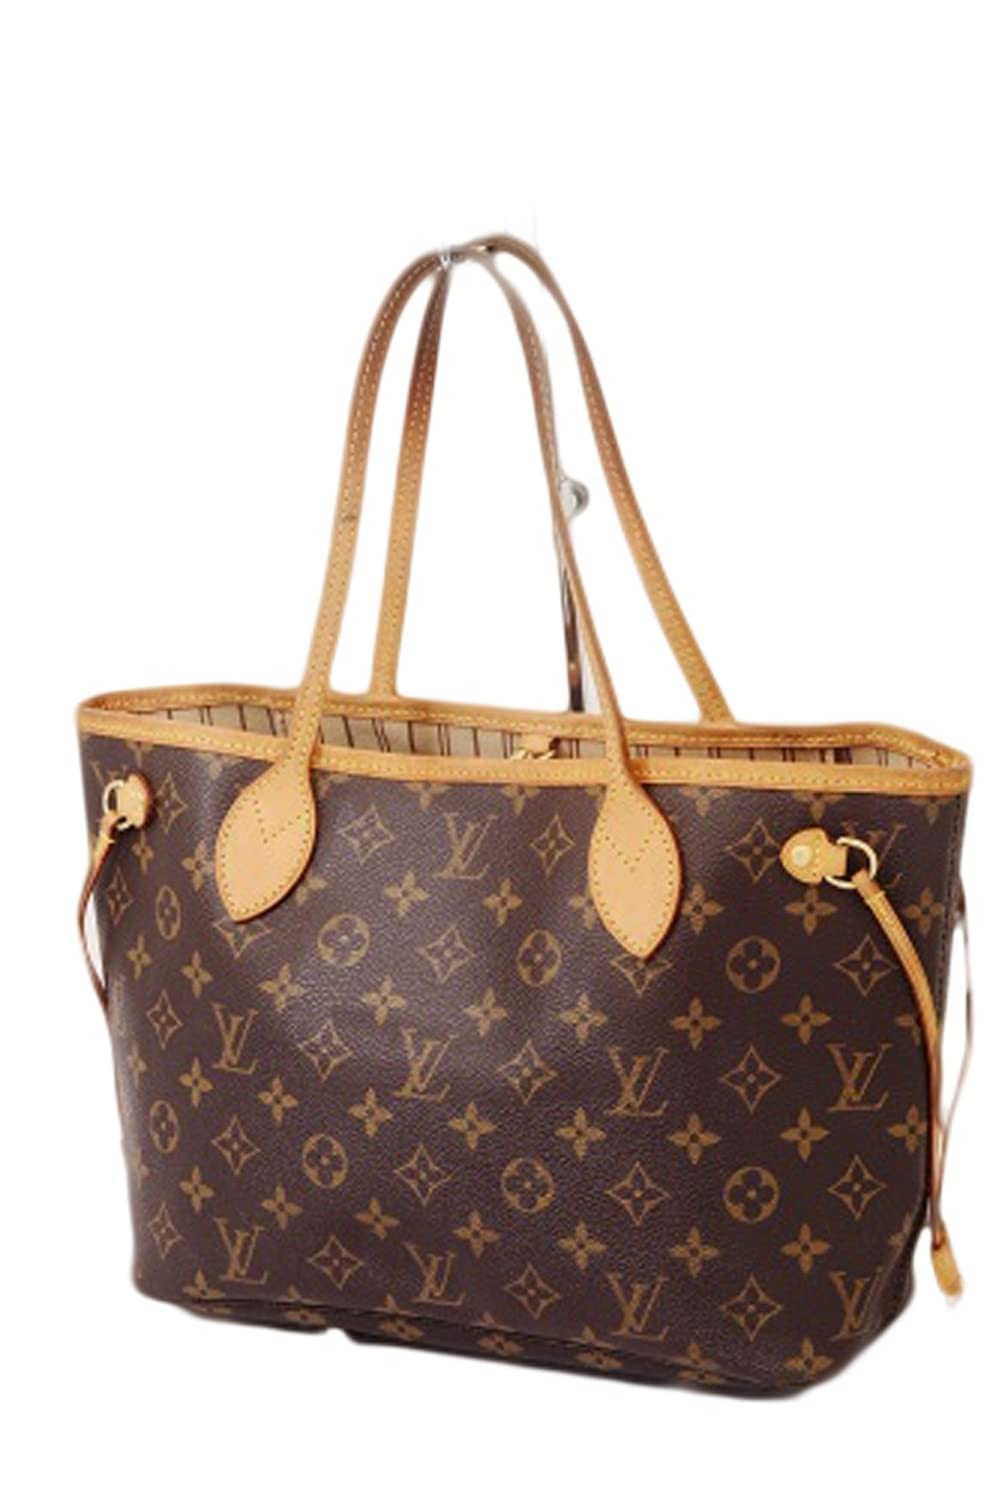 Louis Vuitton Luggage Outlet Uk